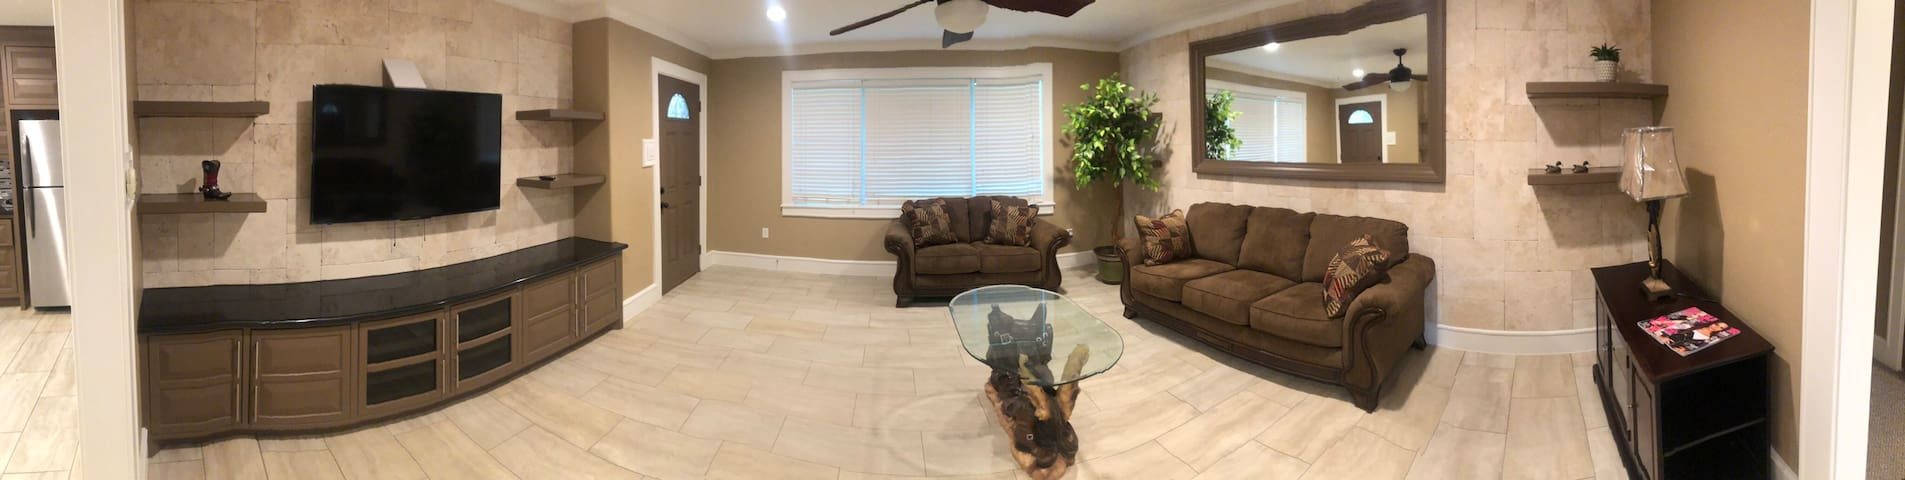 Beautiful Custom Home 2 Bed/ City Center District